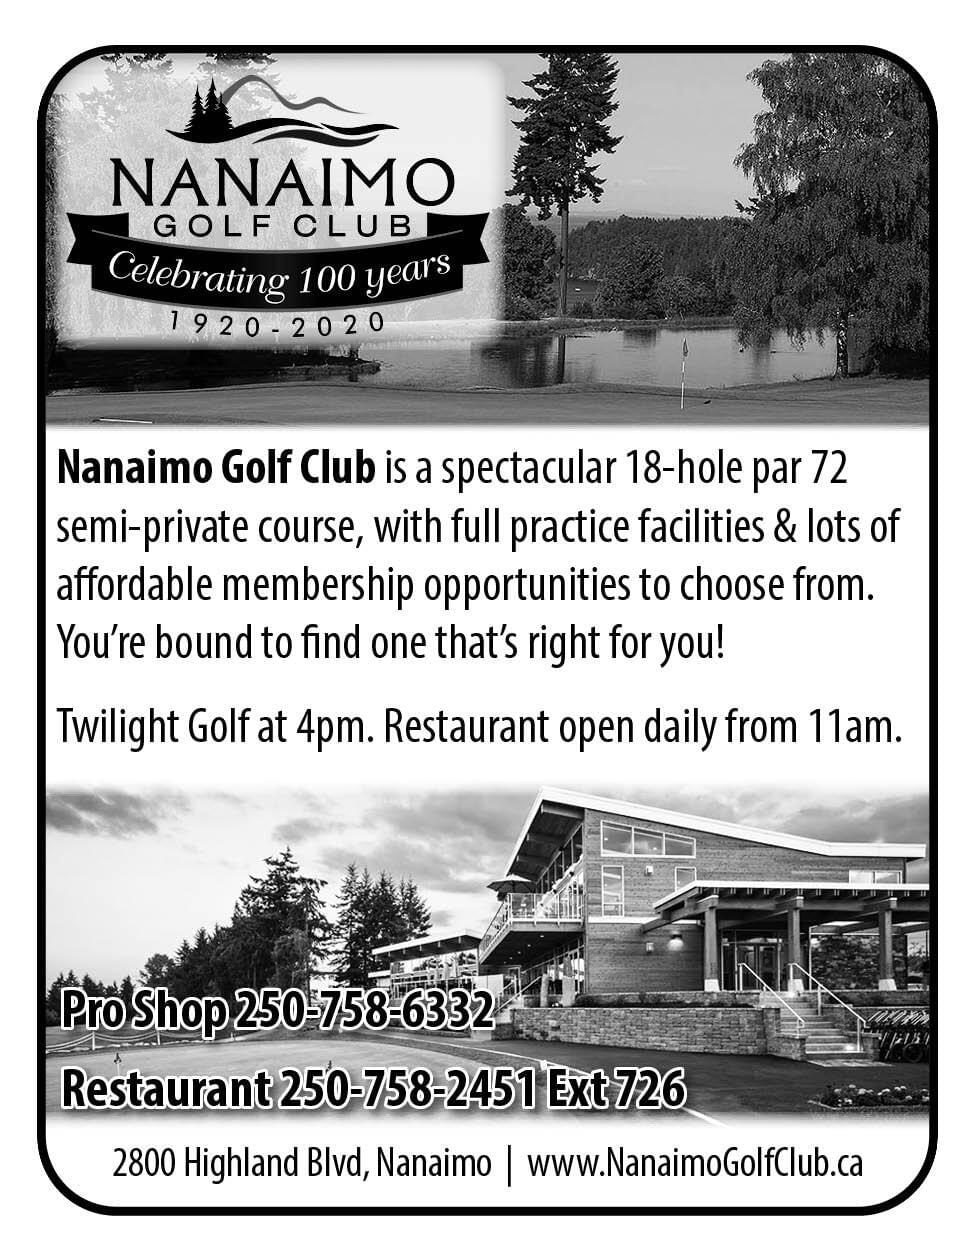 Nanaimo Golf Club Ad in Coffee News